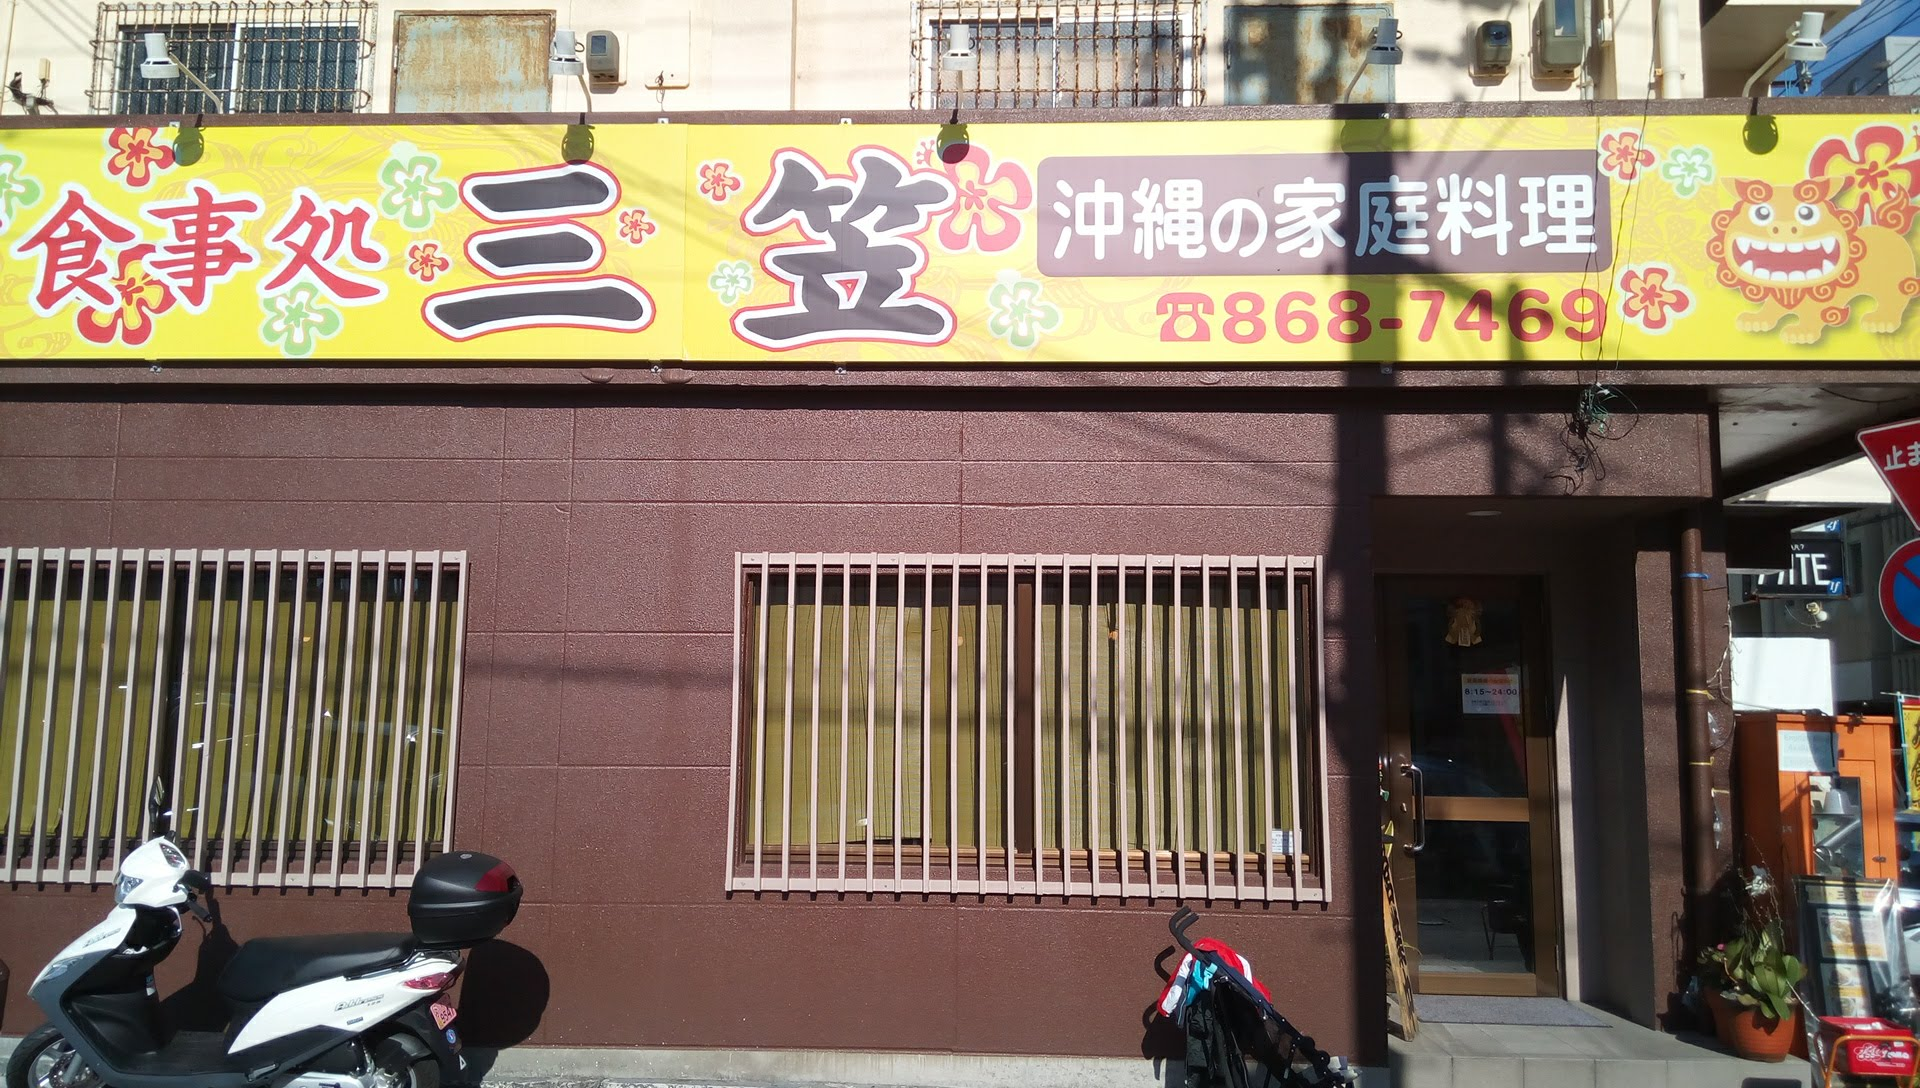 Cheap and delicious Okinawan cuisine restaurant Mikasa in the city center of Naha